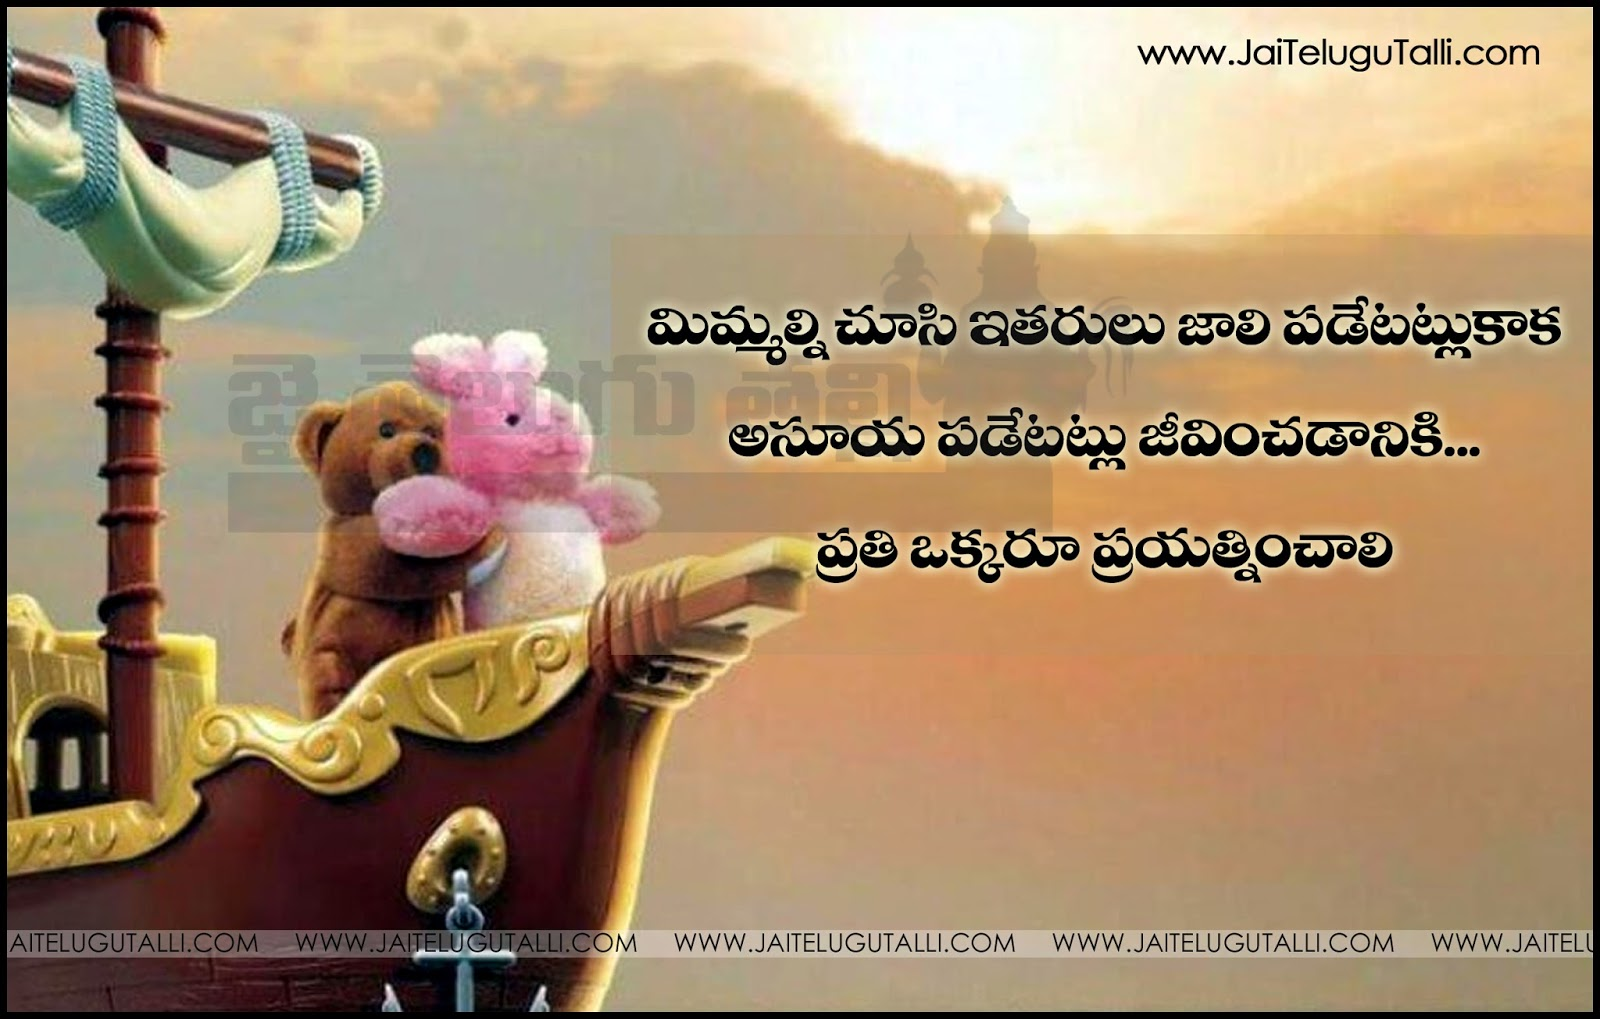 Sayings On Life Inspirational Quotes Inspirational Quotes In Telugu Life Motivational Thoughts And